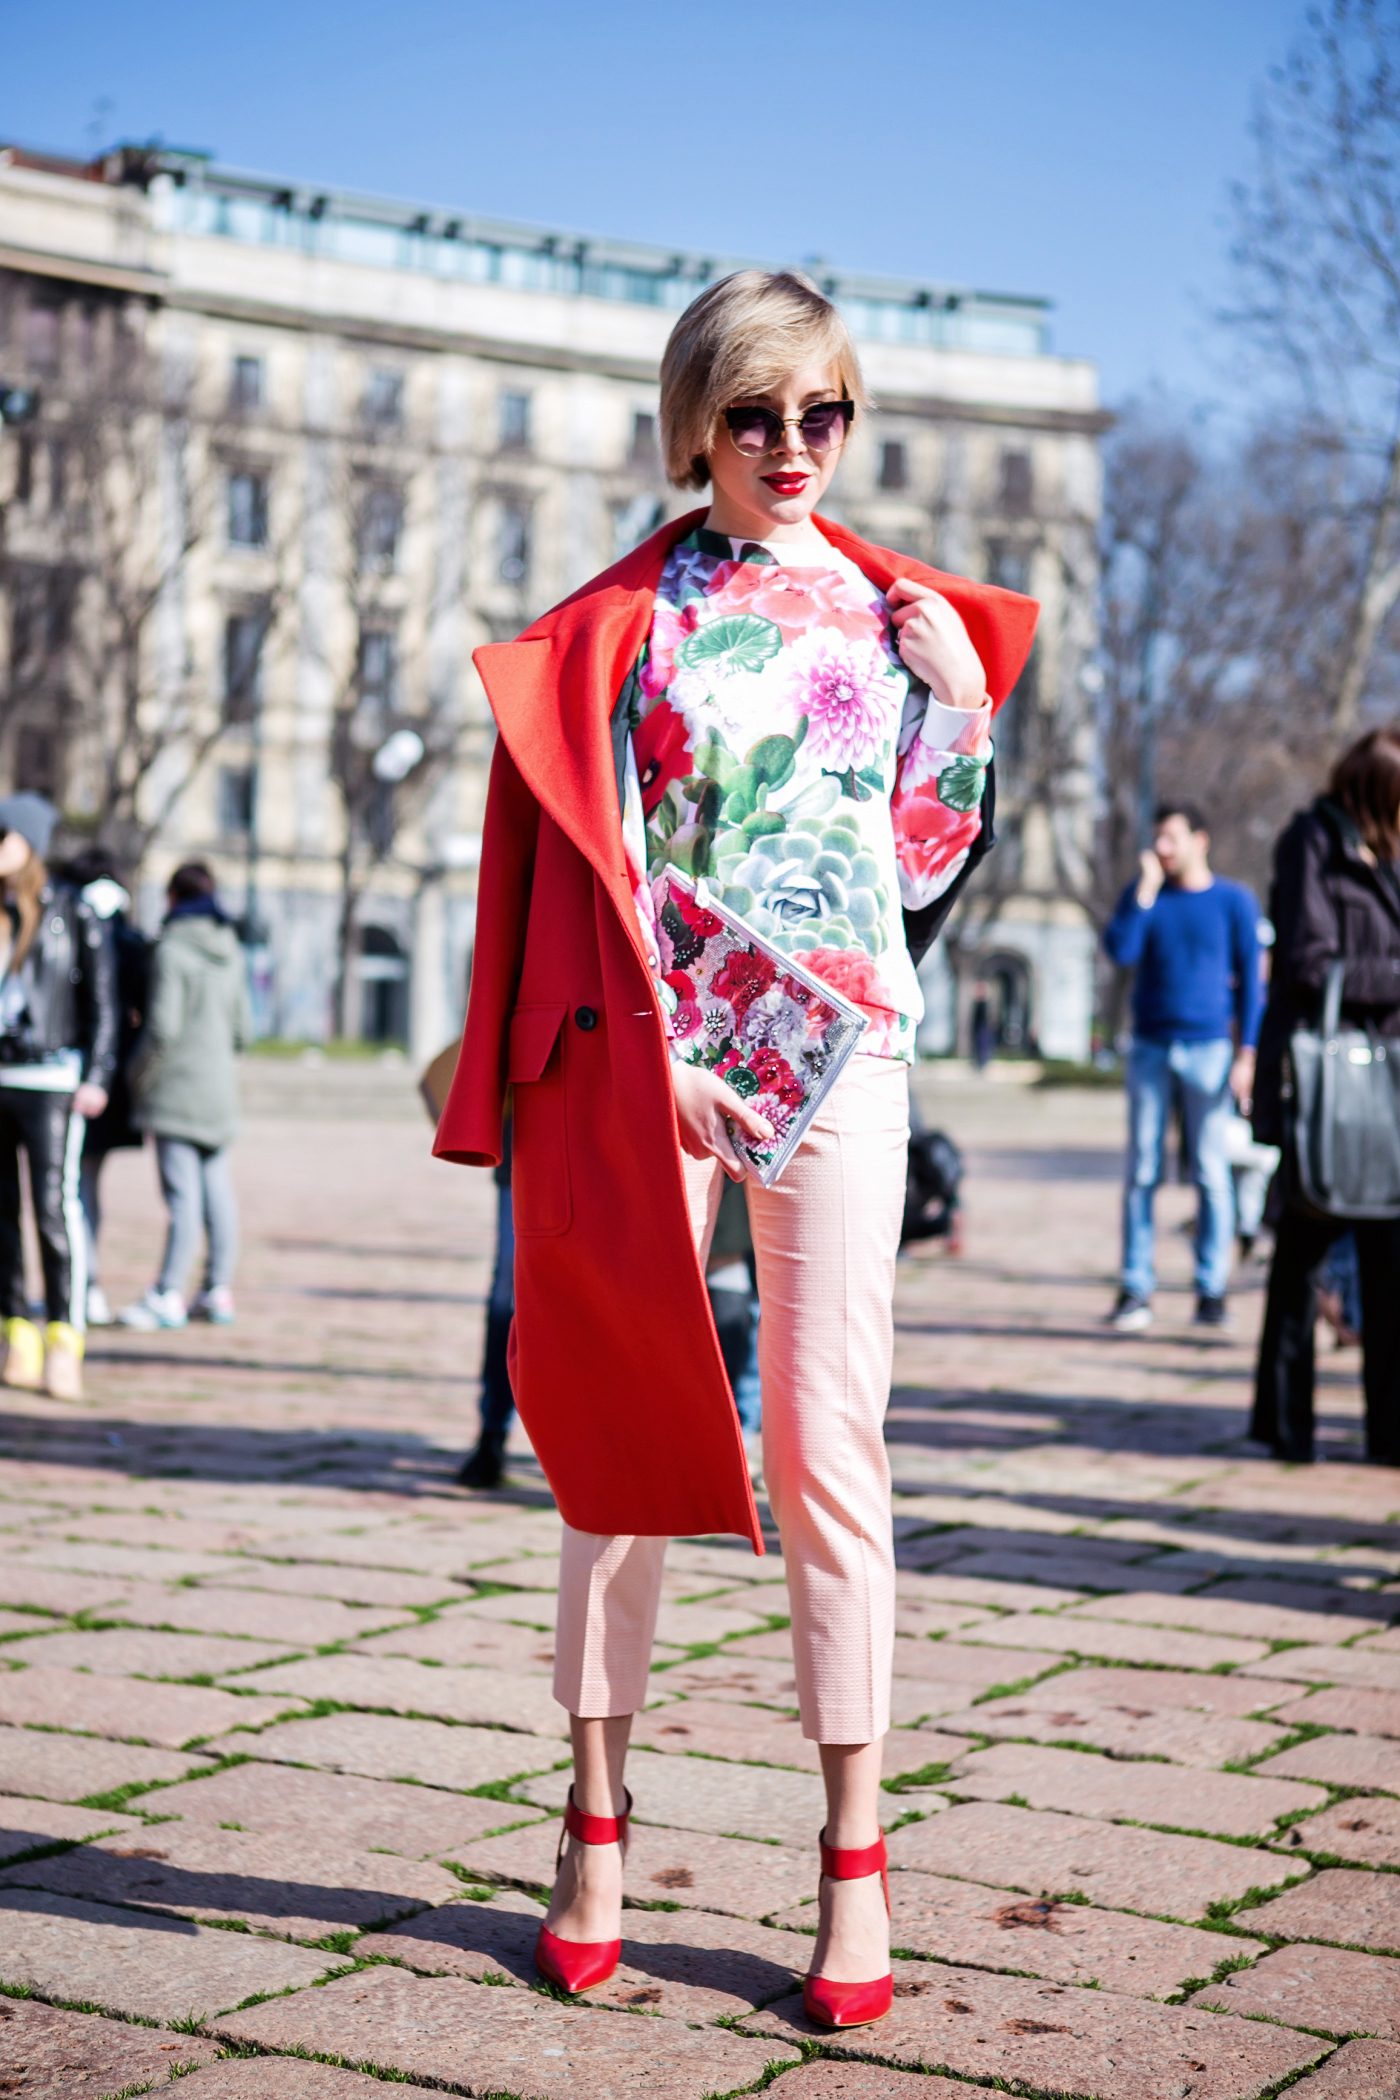 thecablook darya kamalova russian italian fashion blogger blonde short hair pixie cut street style whats inside you by eleonora carisi outfit asos long red coat steven heels shopbop milan fashion week aw14 15 arco della pace just cavalli-2 copy